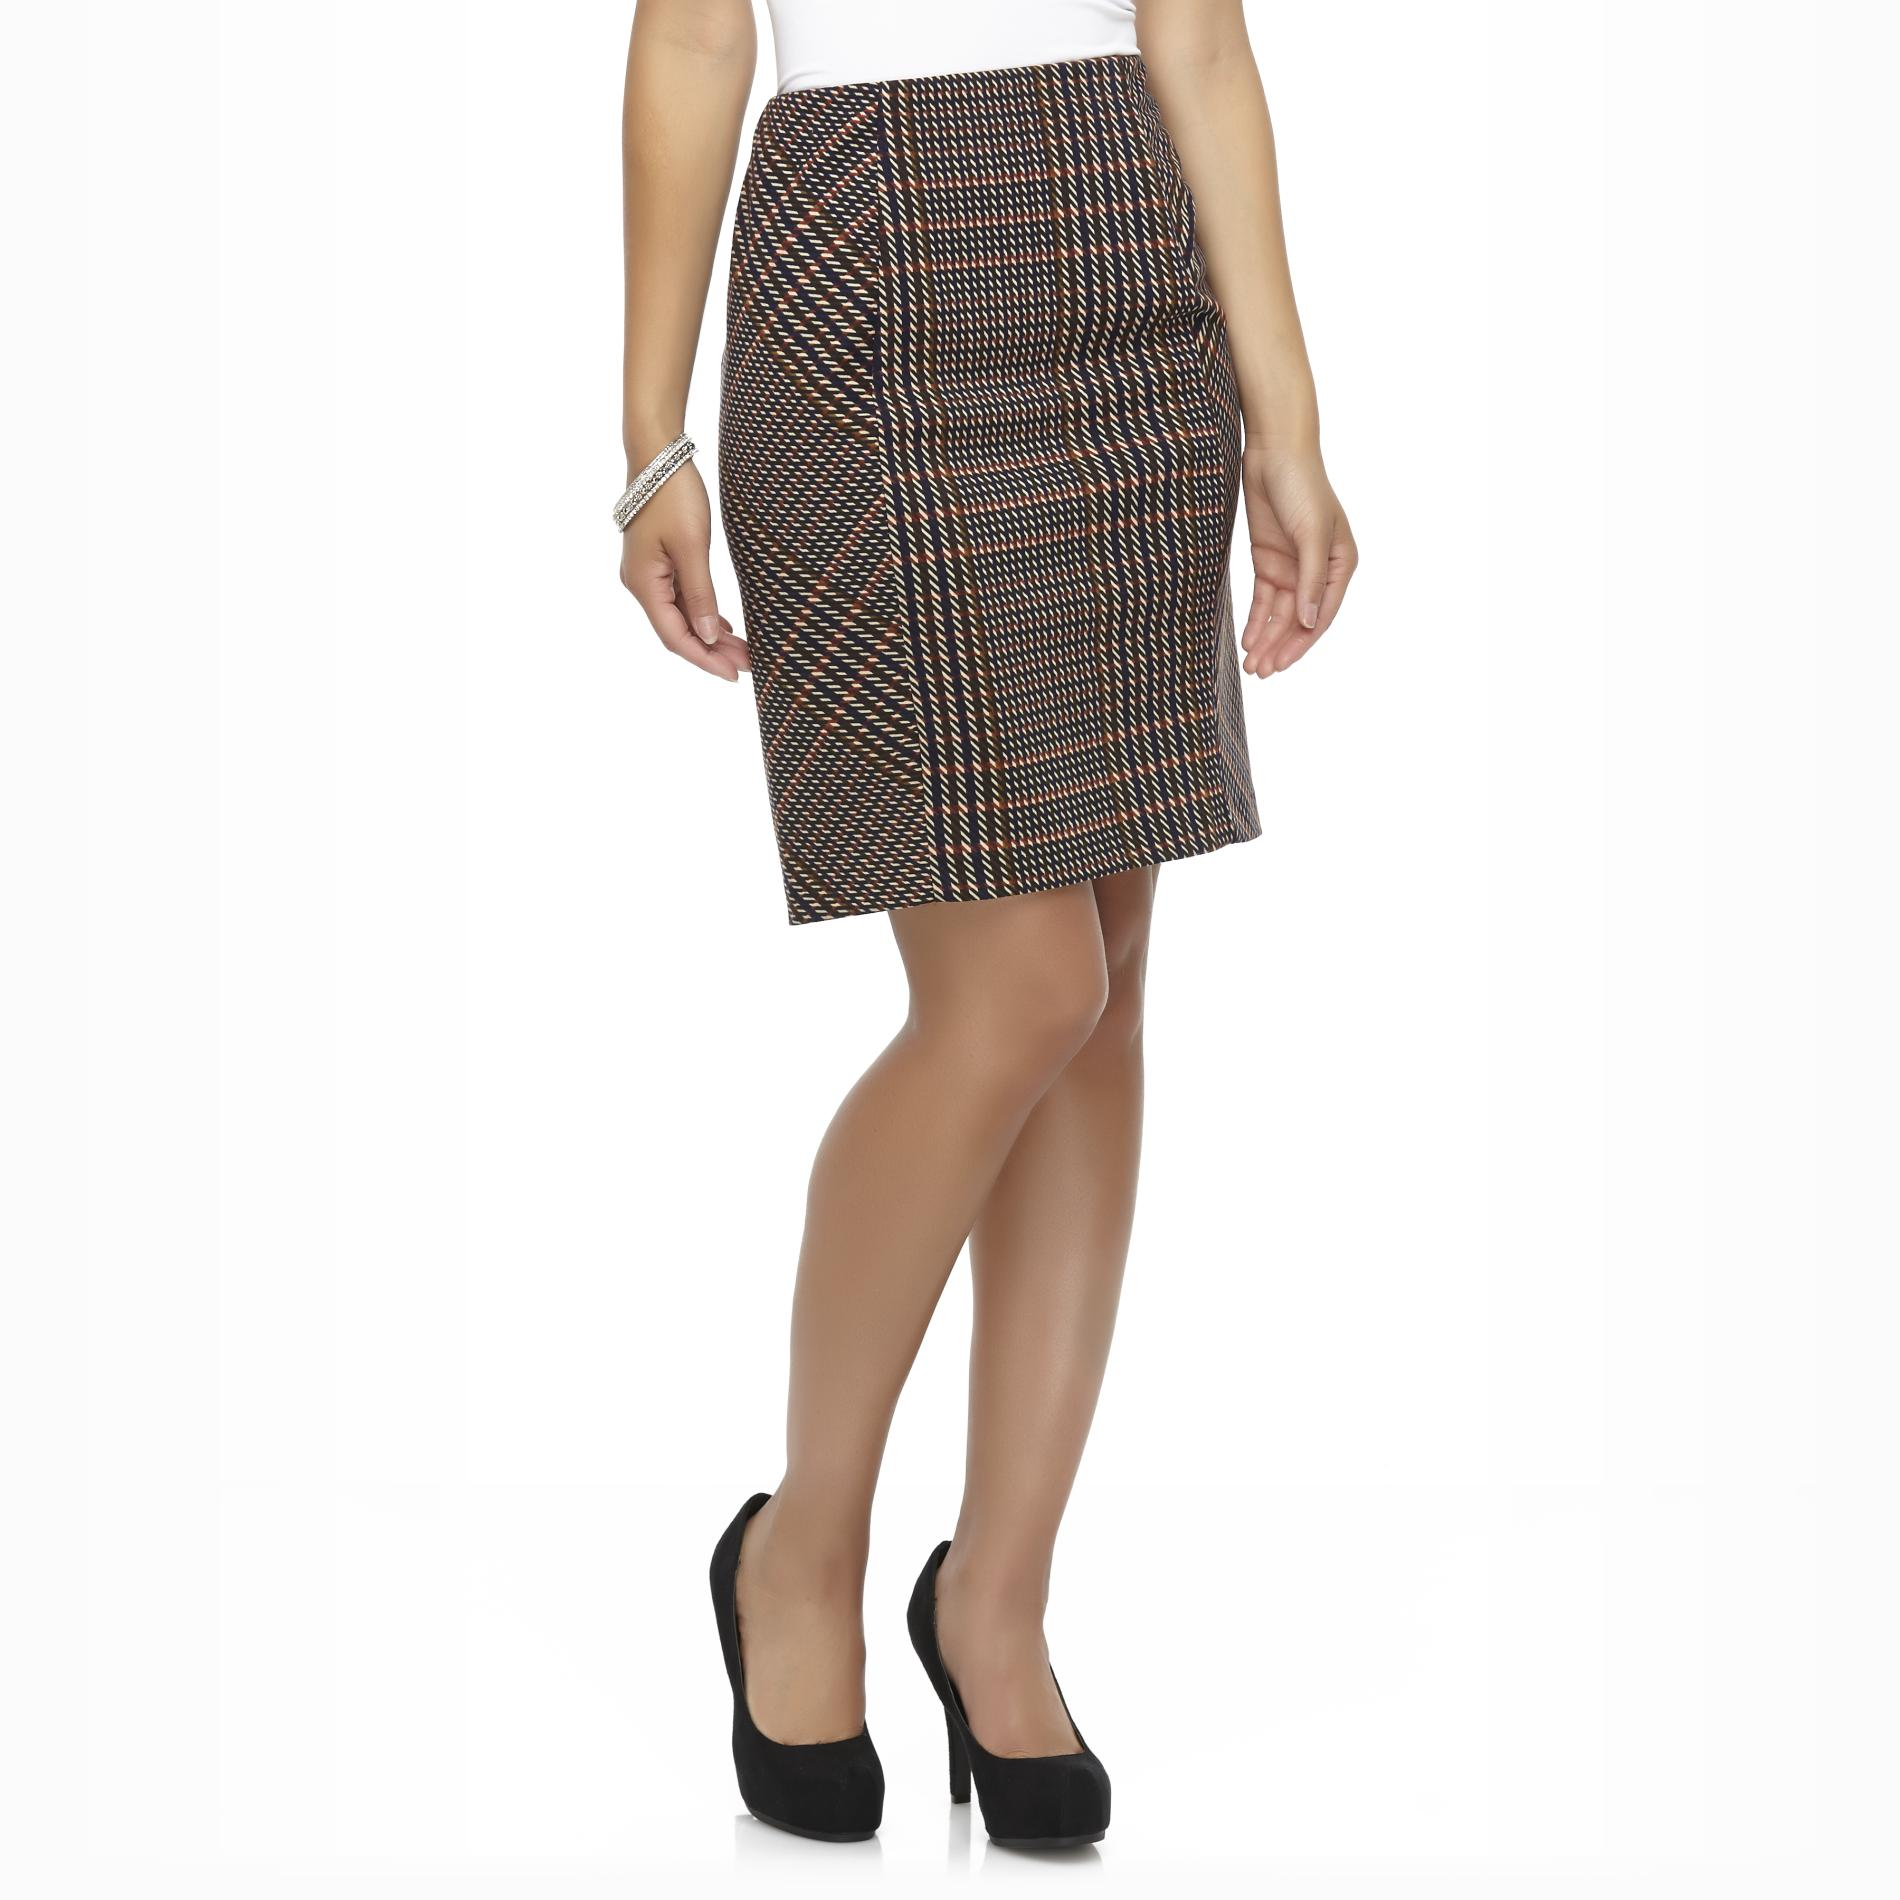 Covington Women's Ponte Knit Pencil Skirt - Plaid at Sears.com